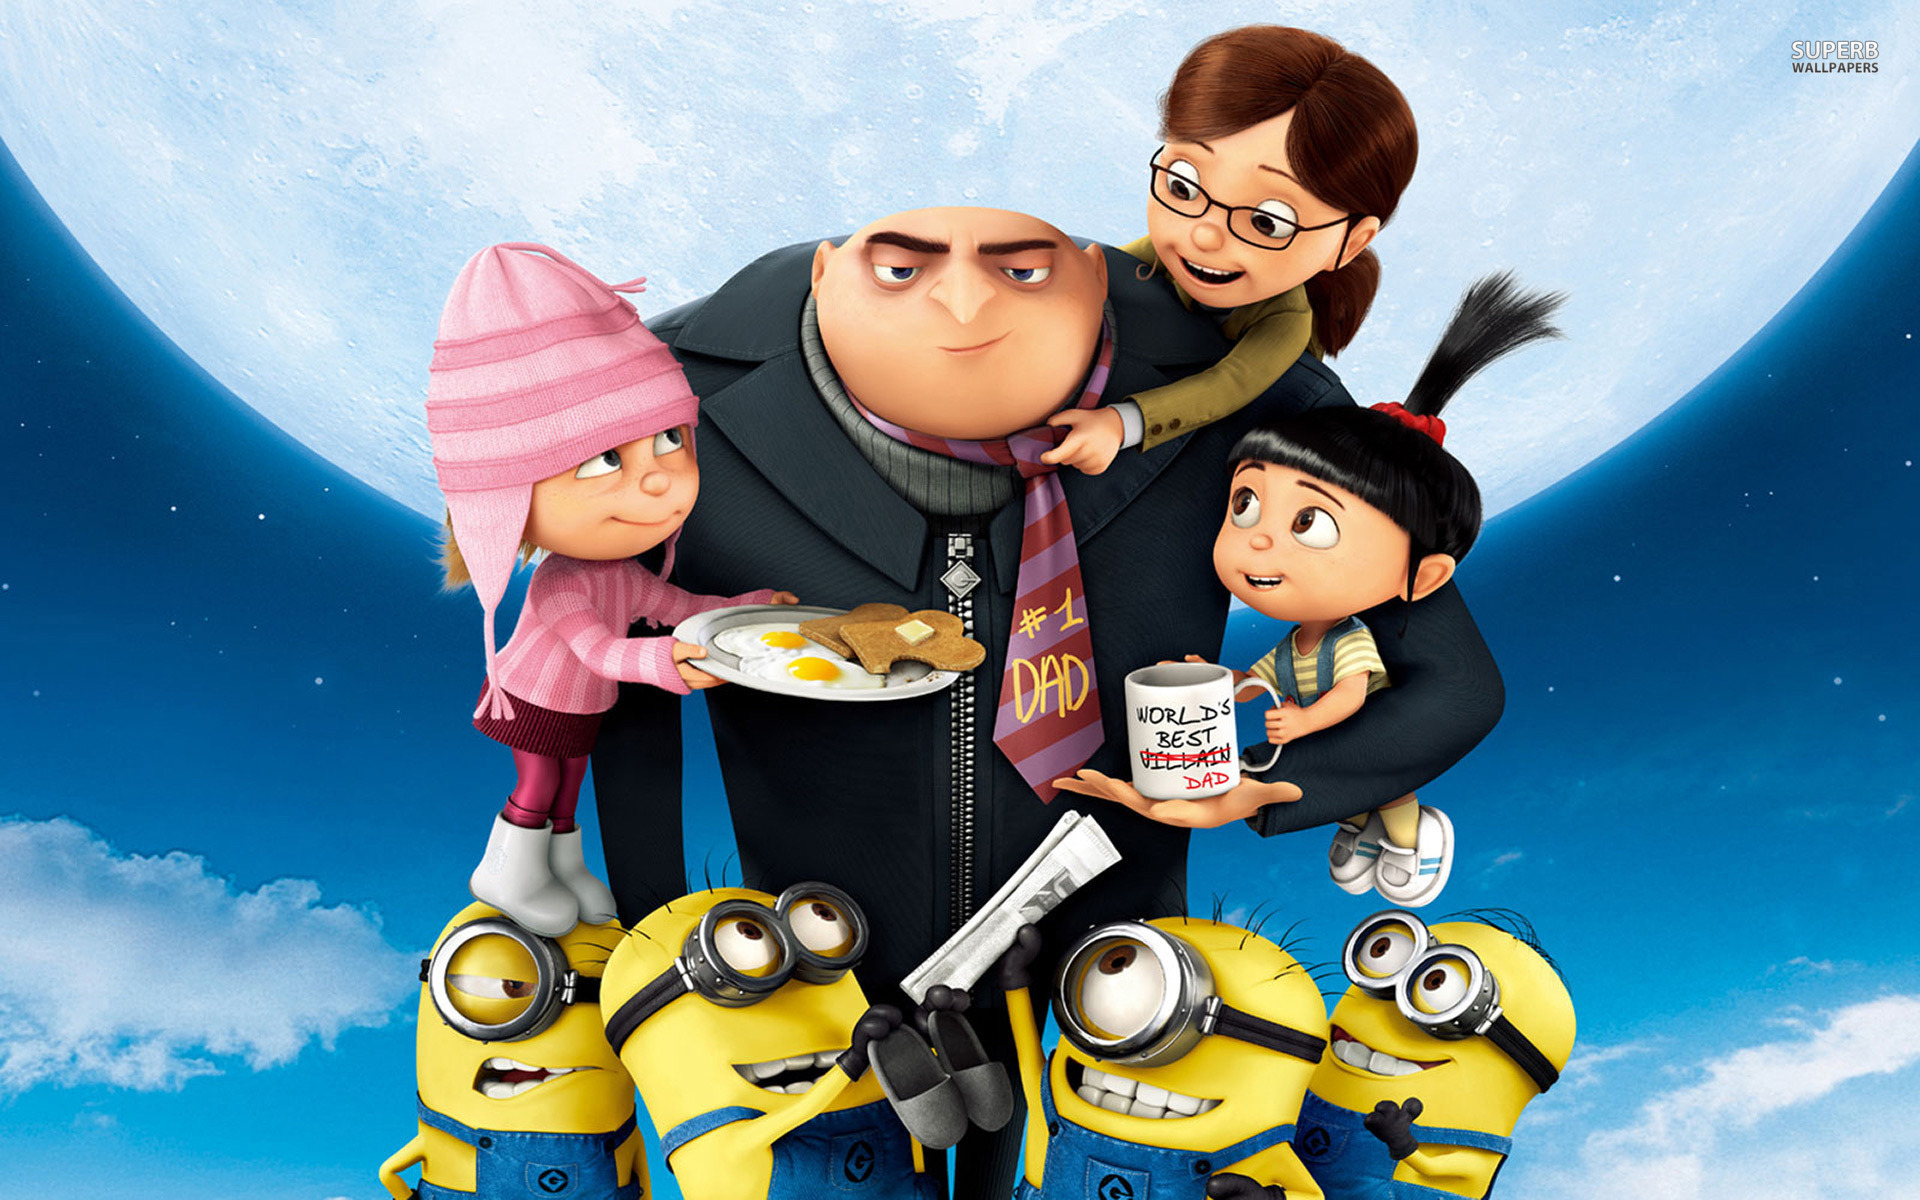 Despicable Me 2 wallpaper 1920x1200 jpg